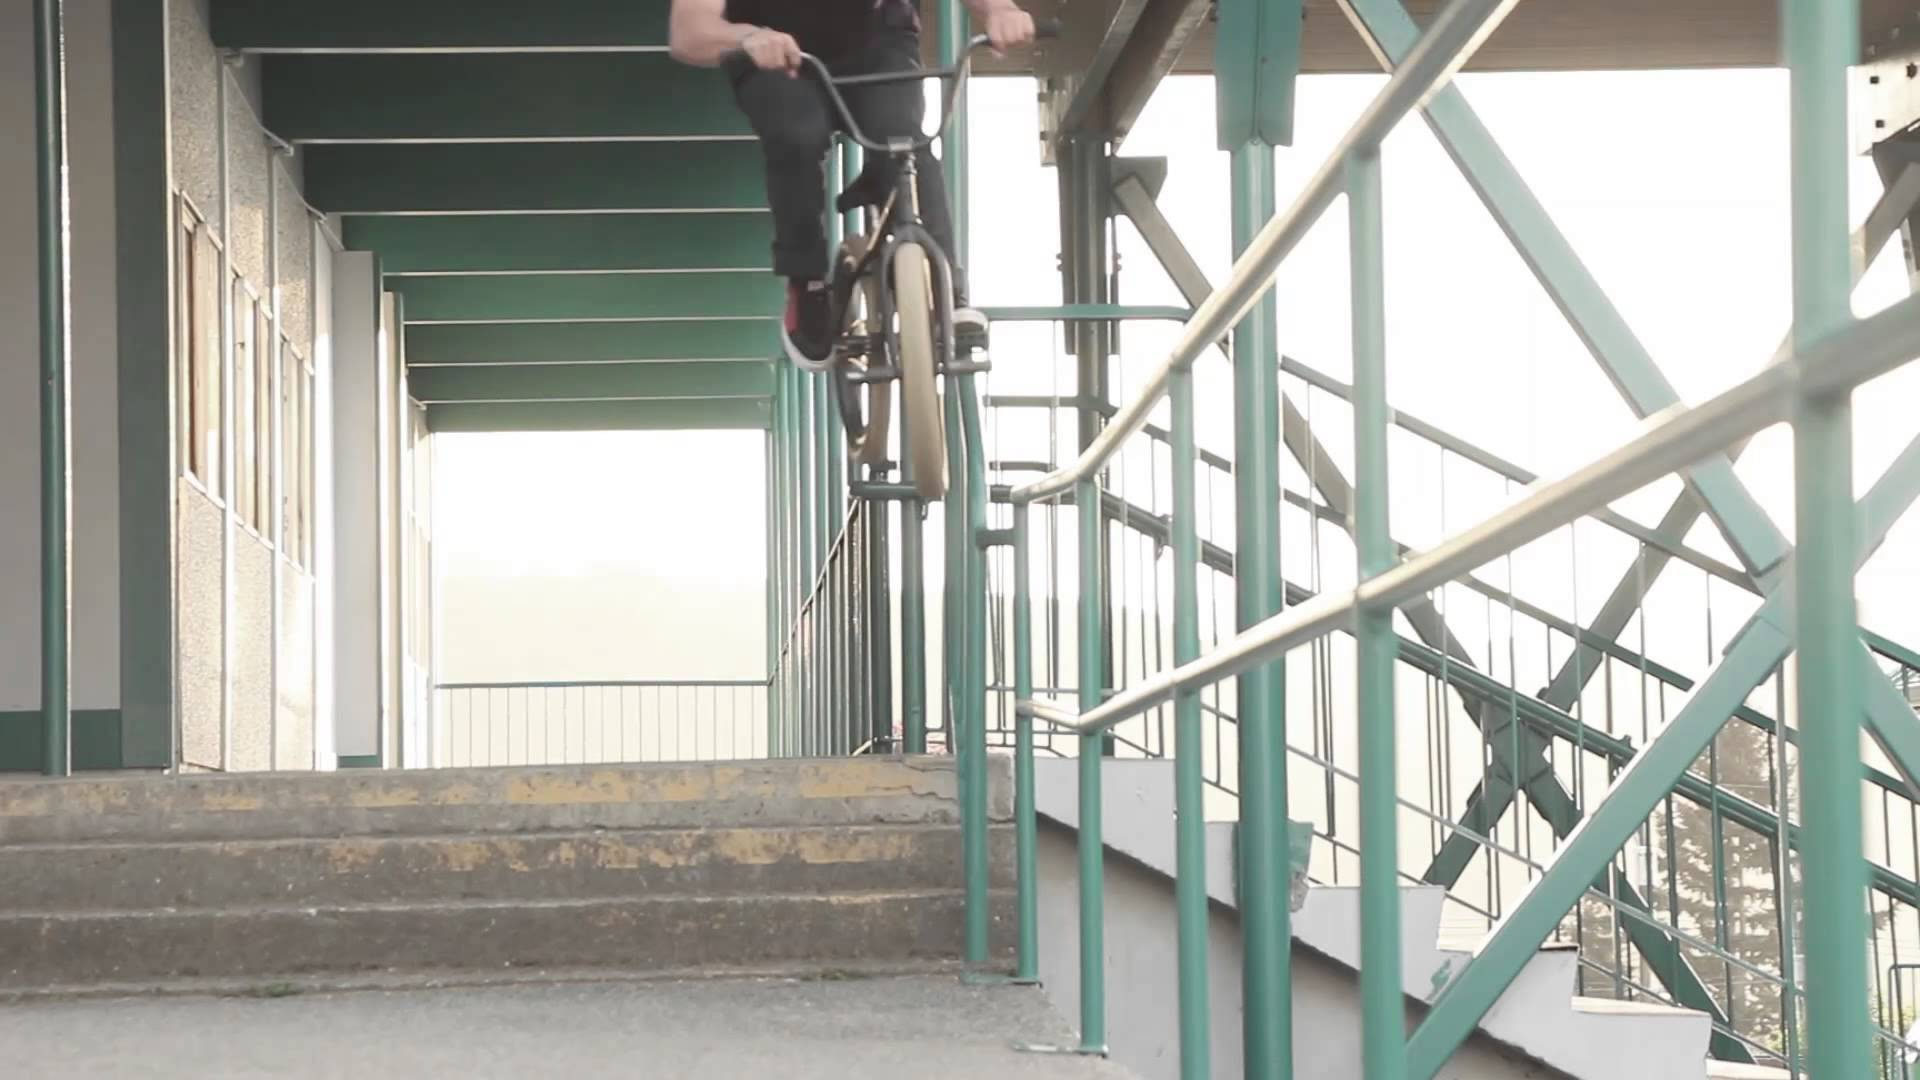 Nathan Hines 2014 Street/Park mix by Rayden Wickop